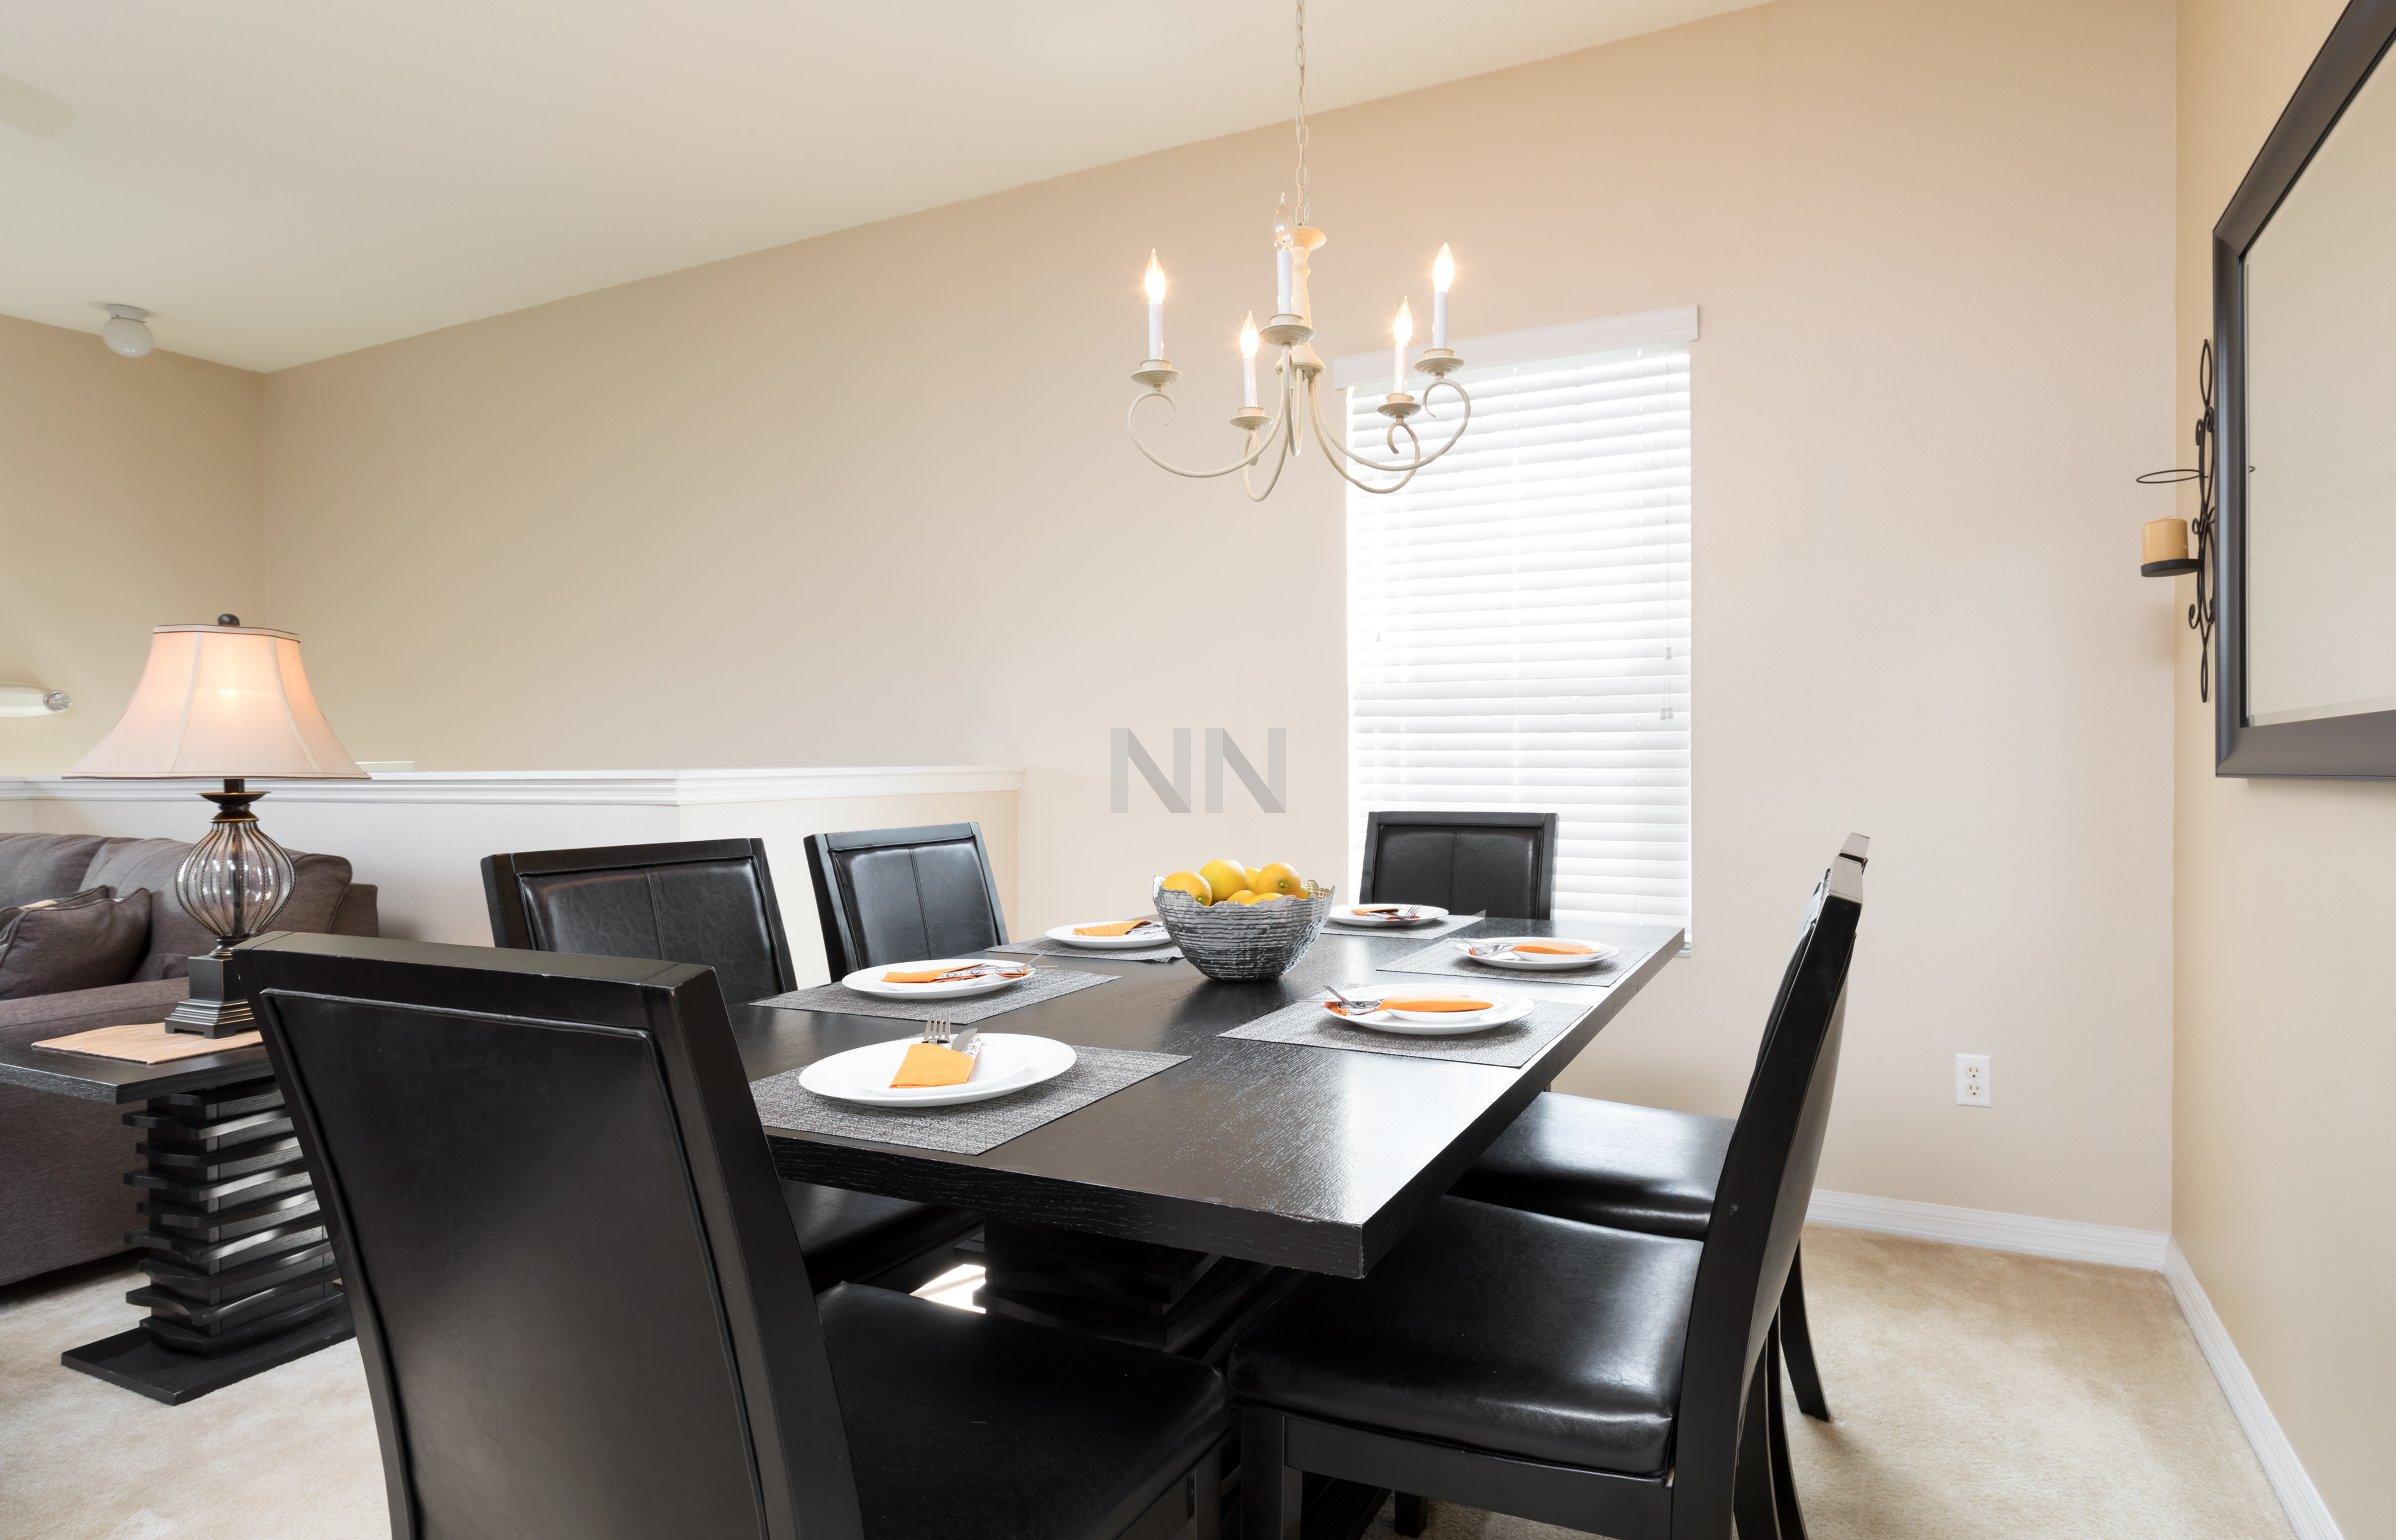 Condo in Kissimmee (Disney Area) with